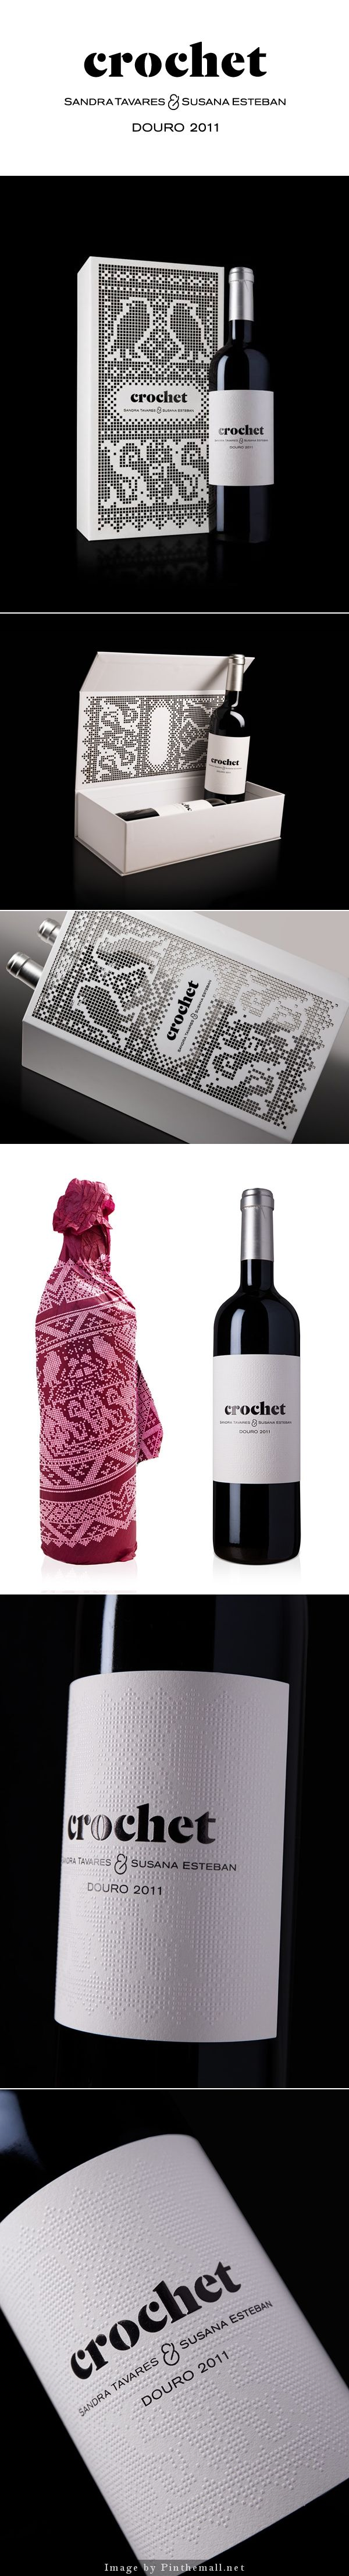 Love this crochet inspired wine packaging curated by Packaging Diva PD created via https://www.behance.net/gallery/12358909/Crochet